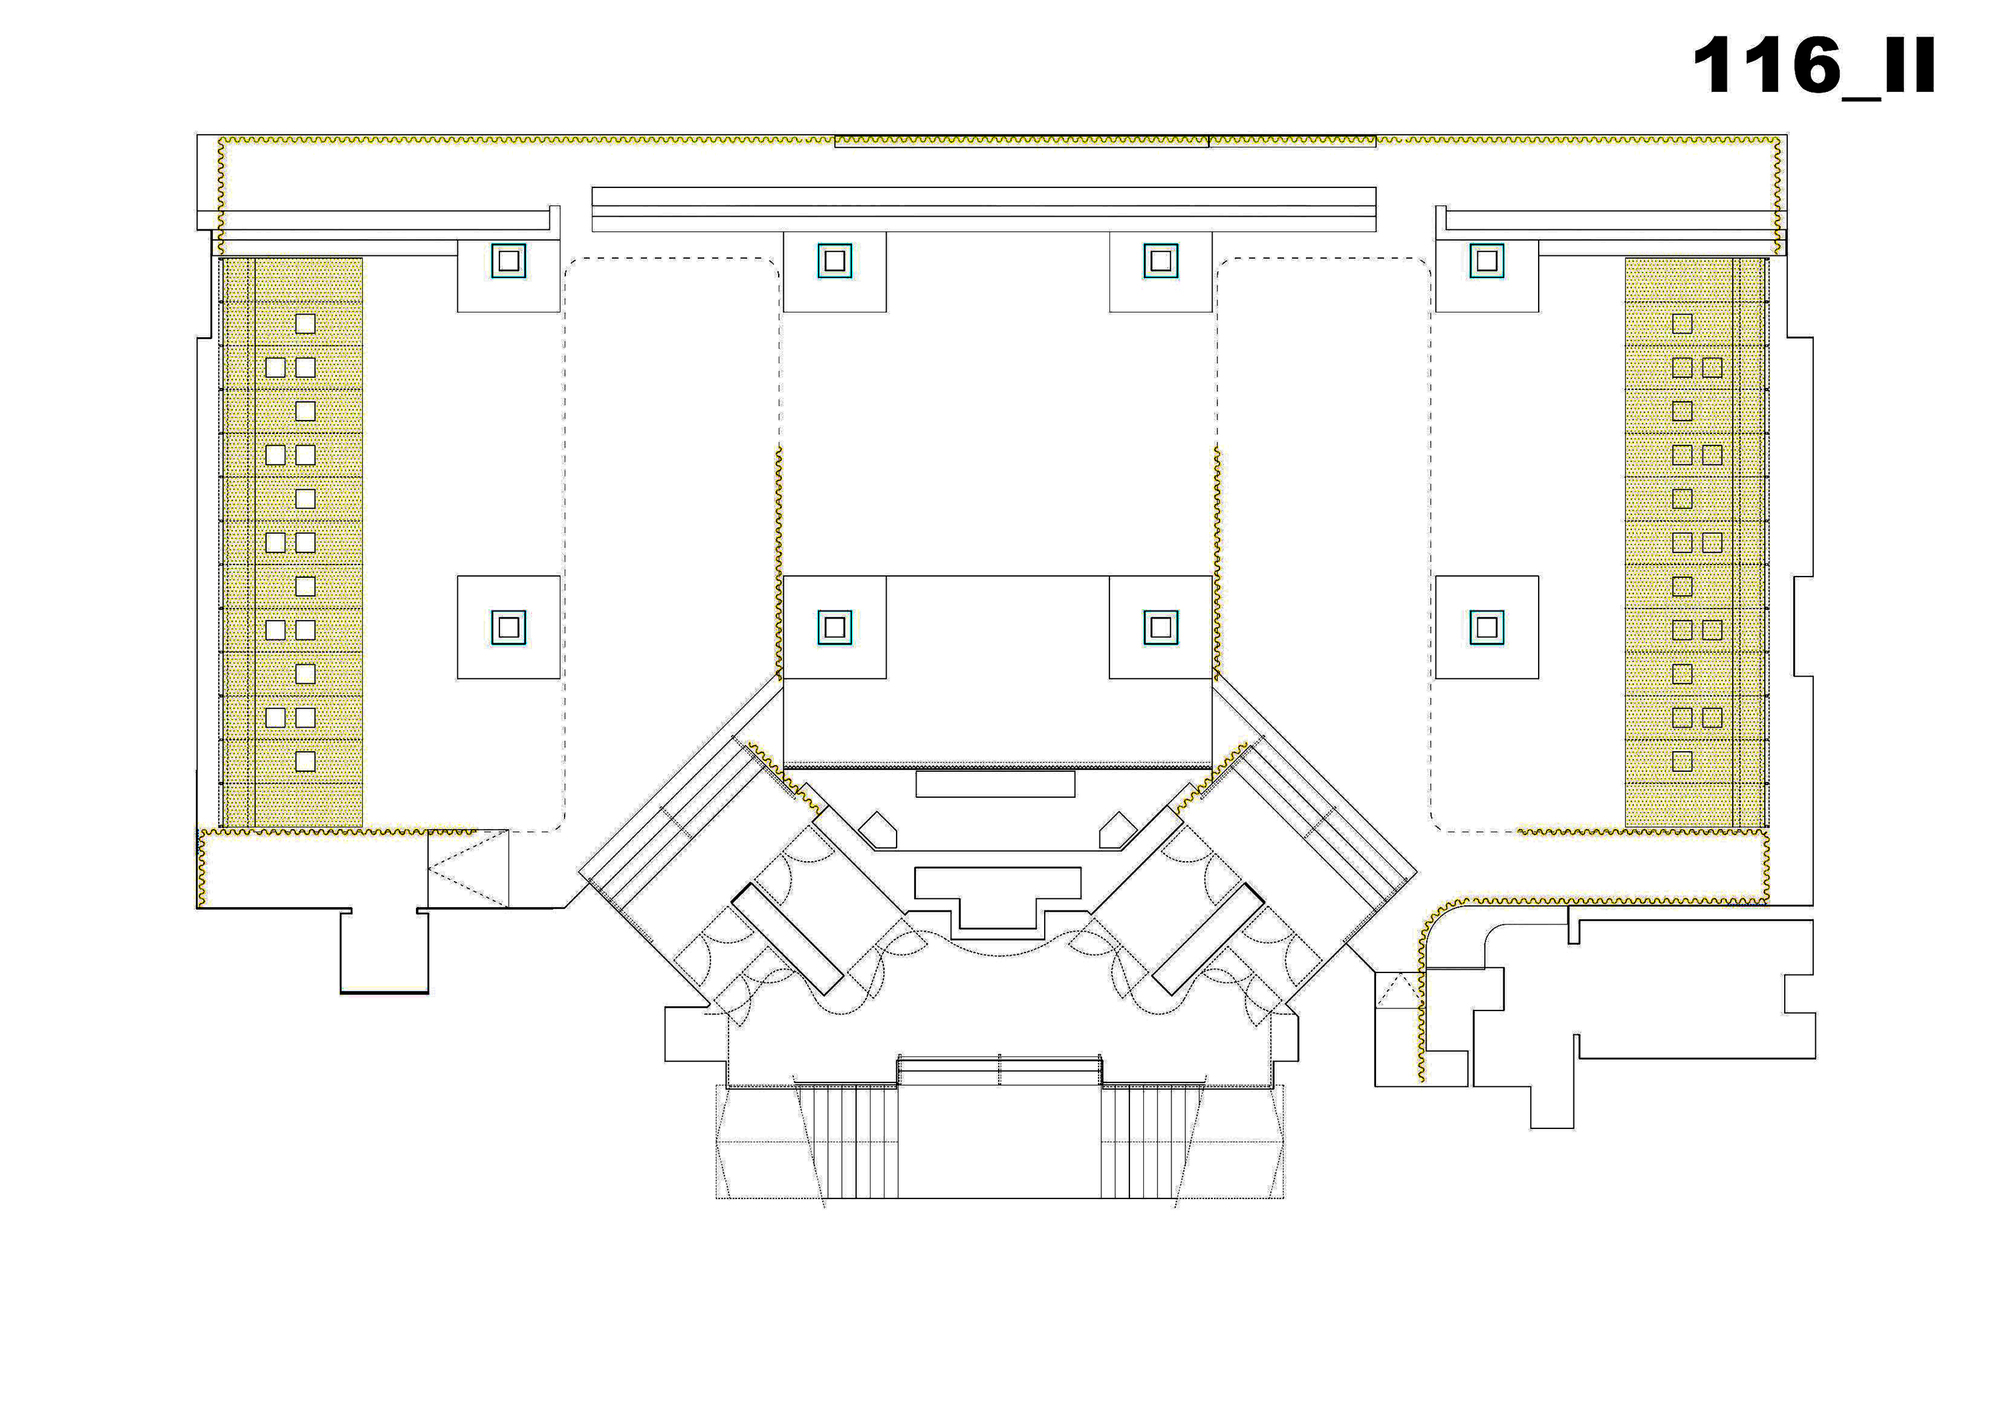 canalla disco vaillo irigaray archdaily floor plan